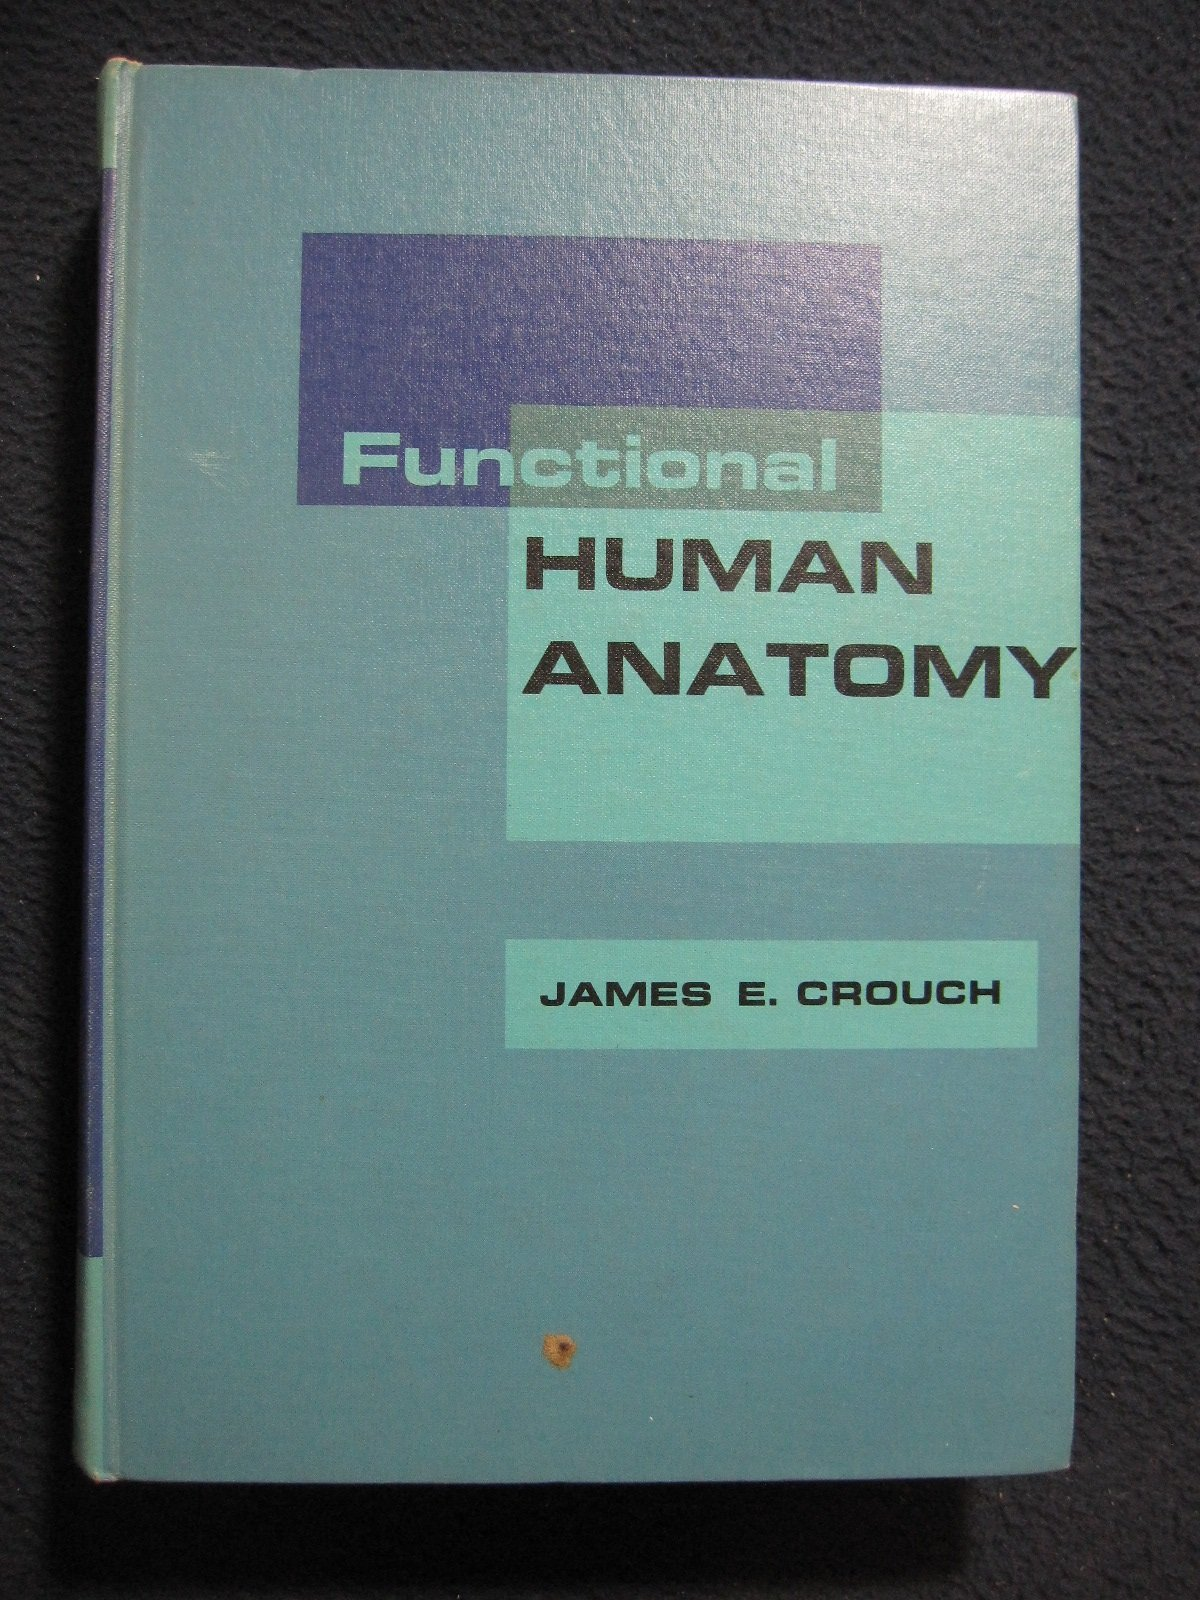 Functional Human Anatomy James Crouch Amazon Books